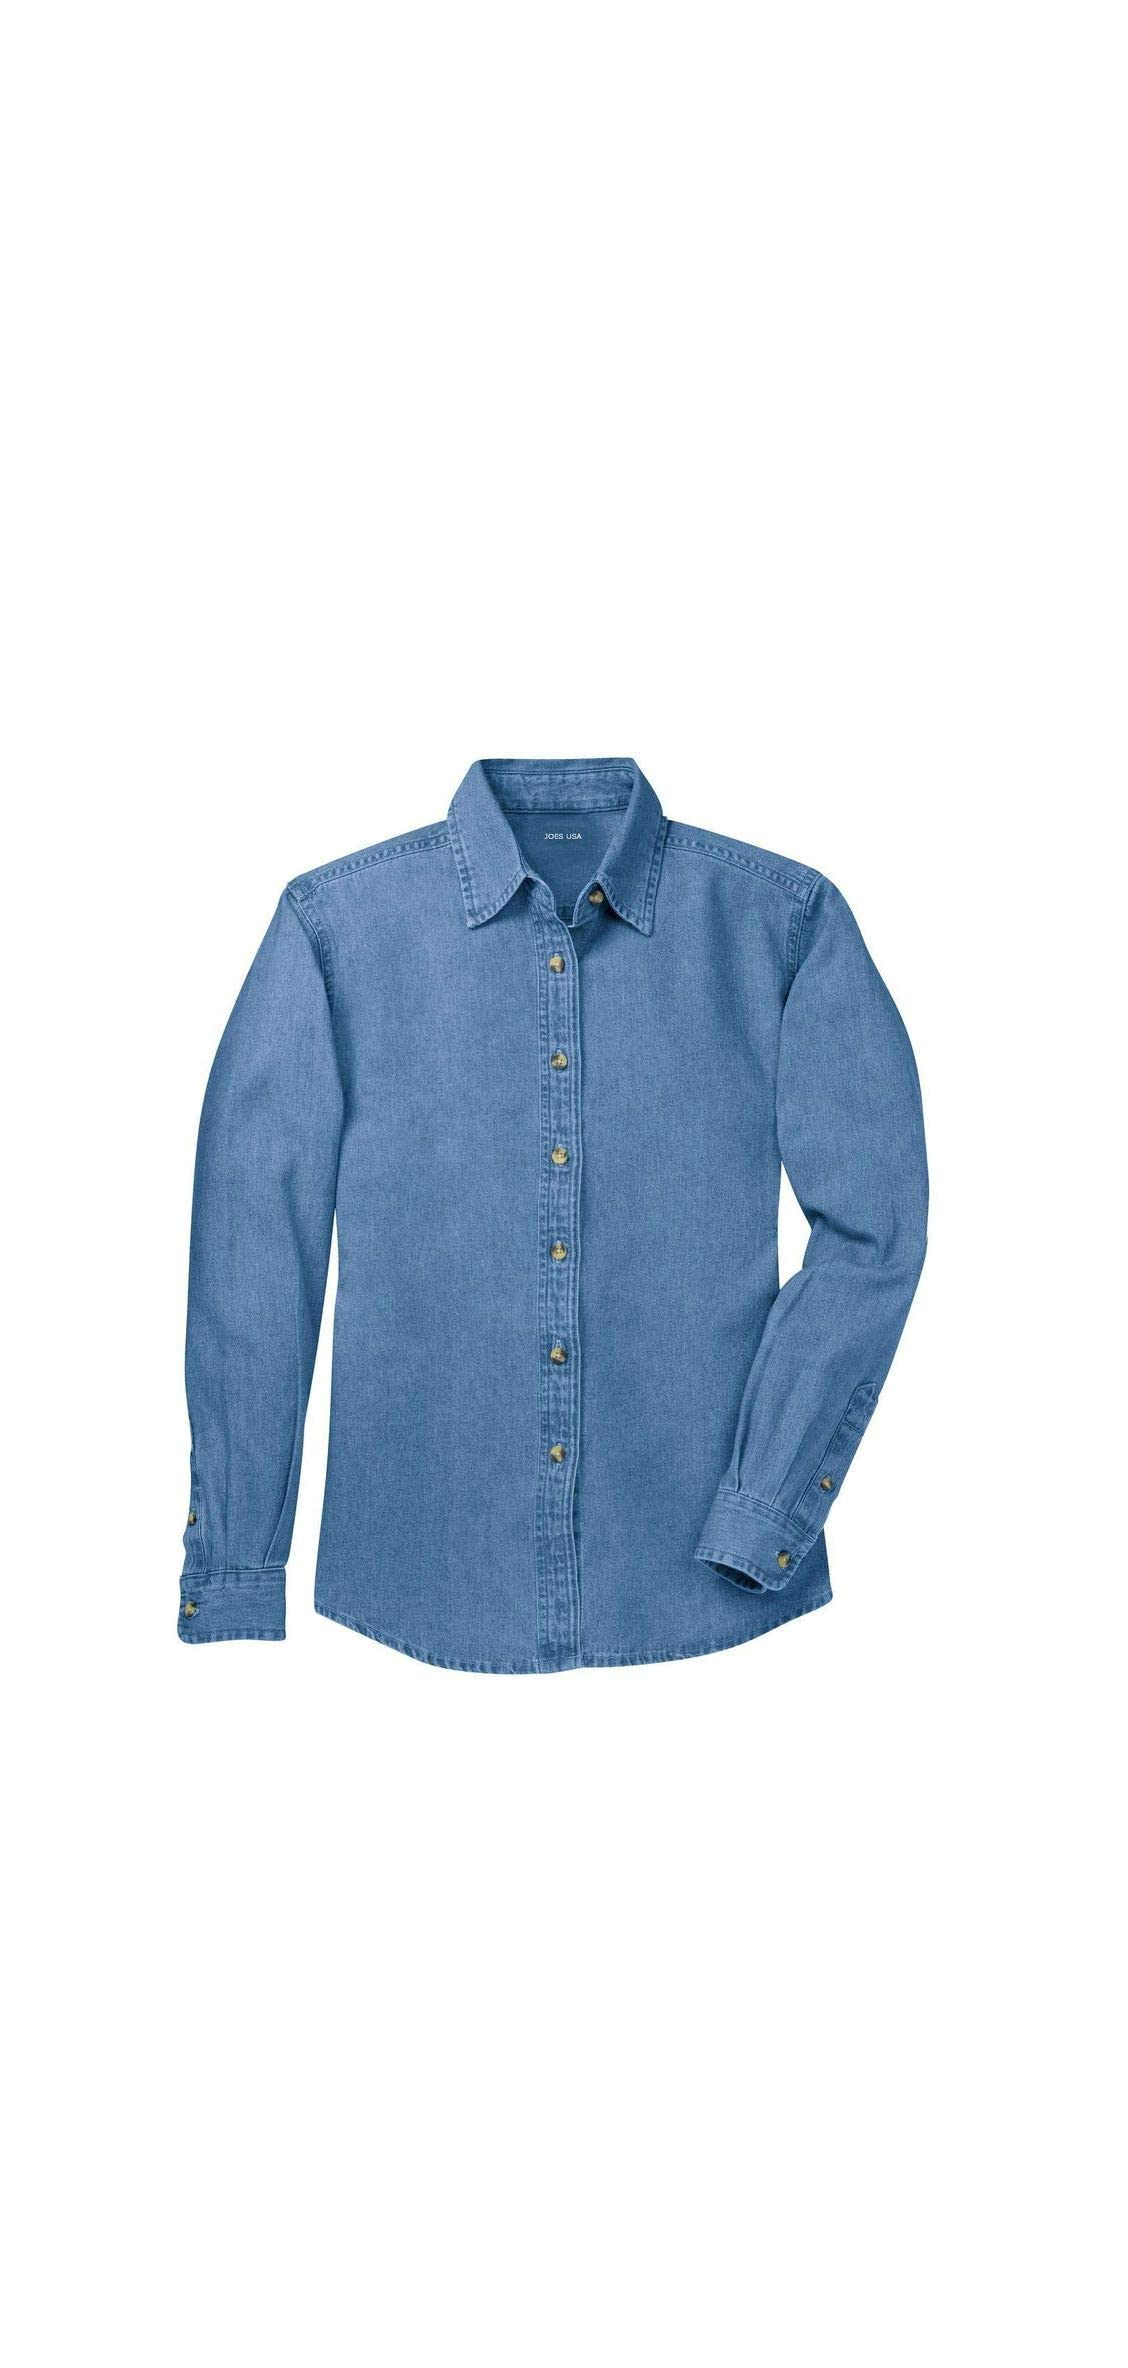 Ladies Long Sleeve Value Denim Shirts In Sizes Xs-xl